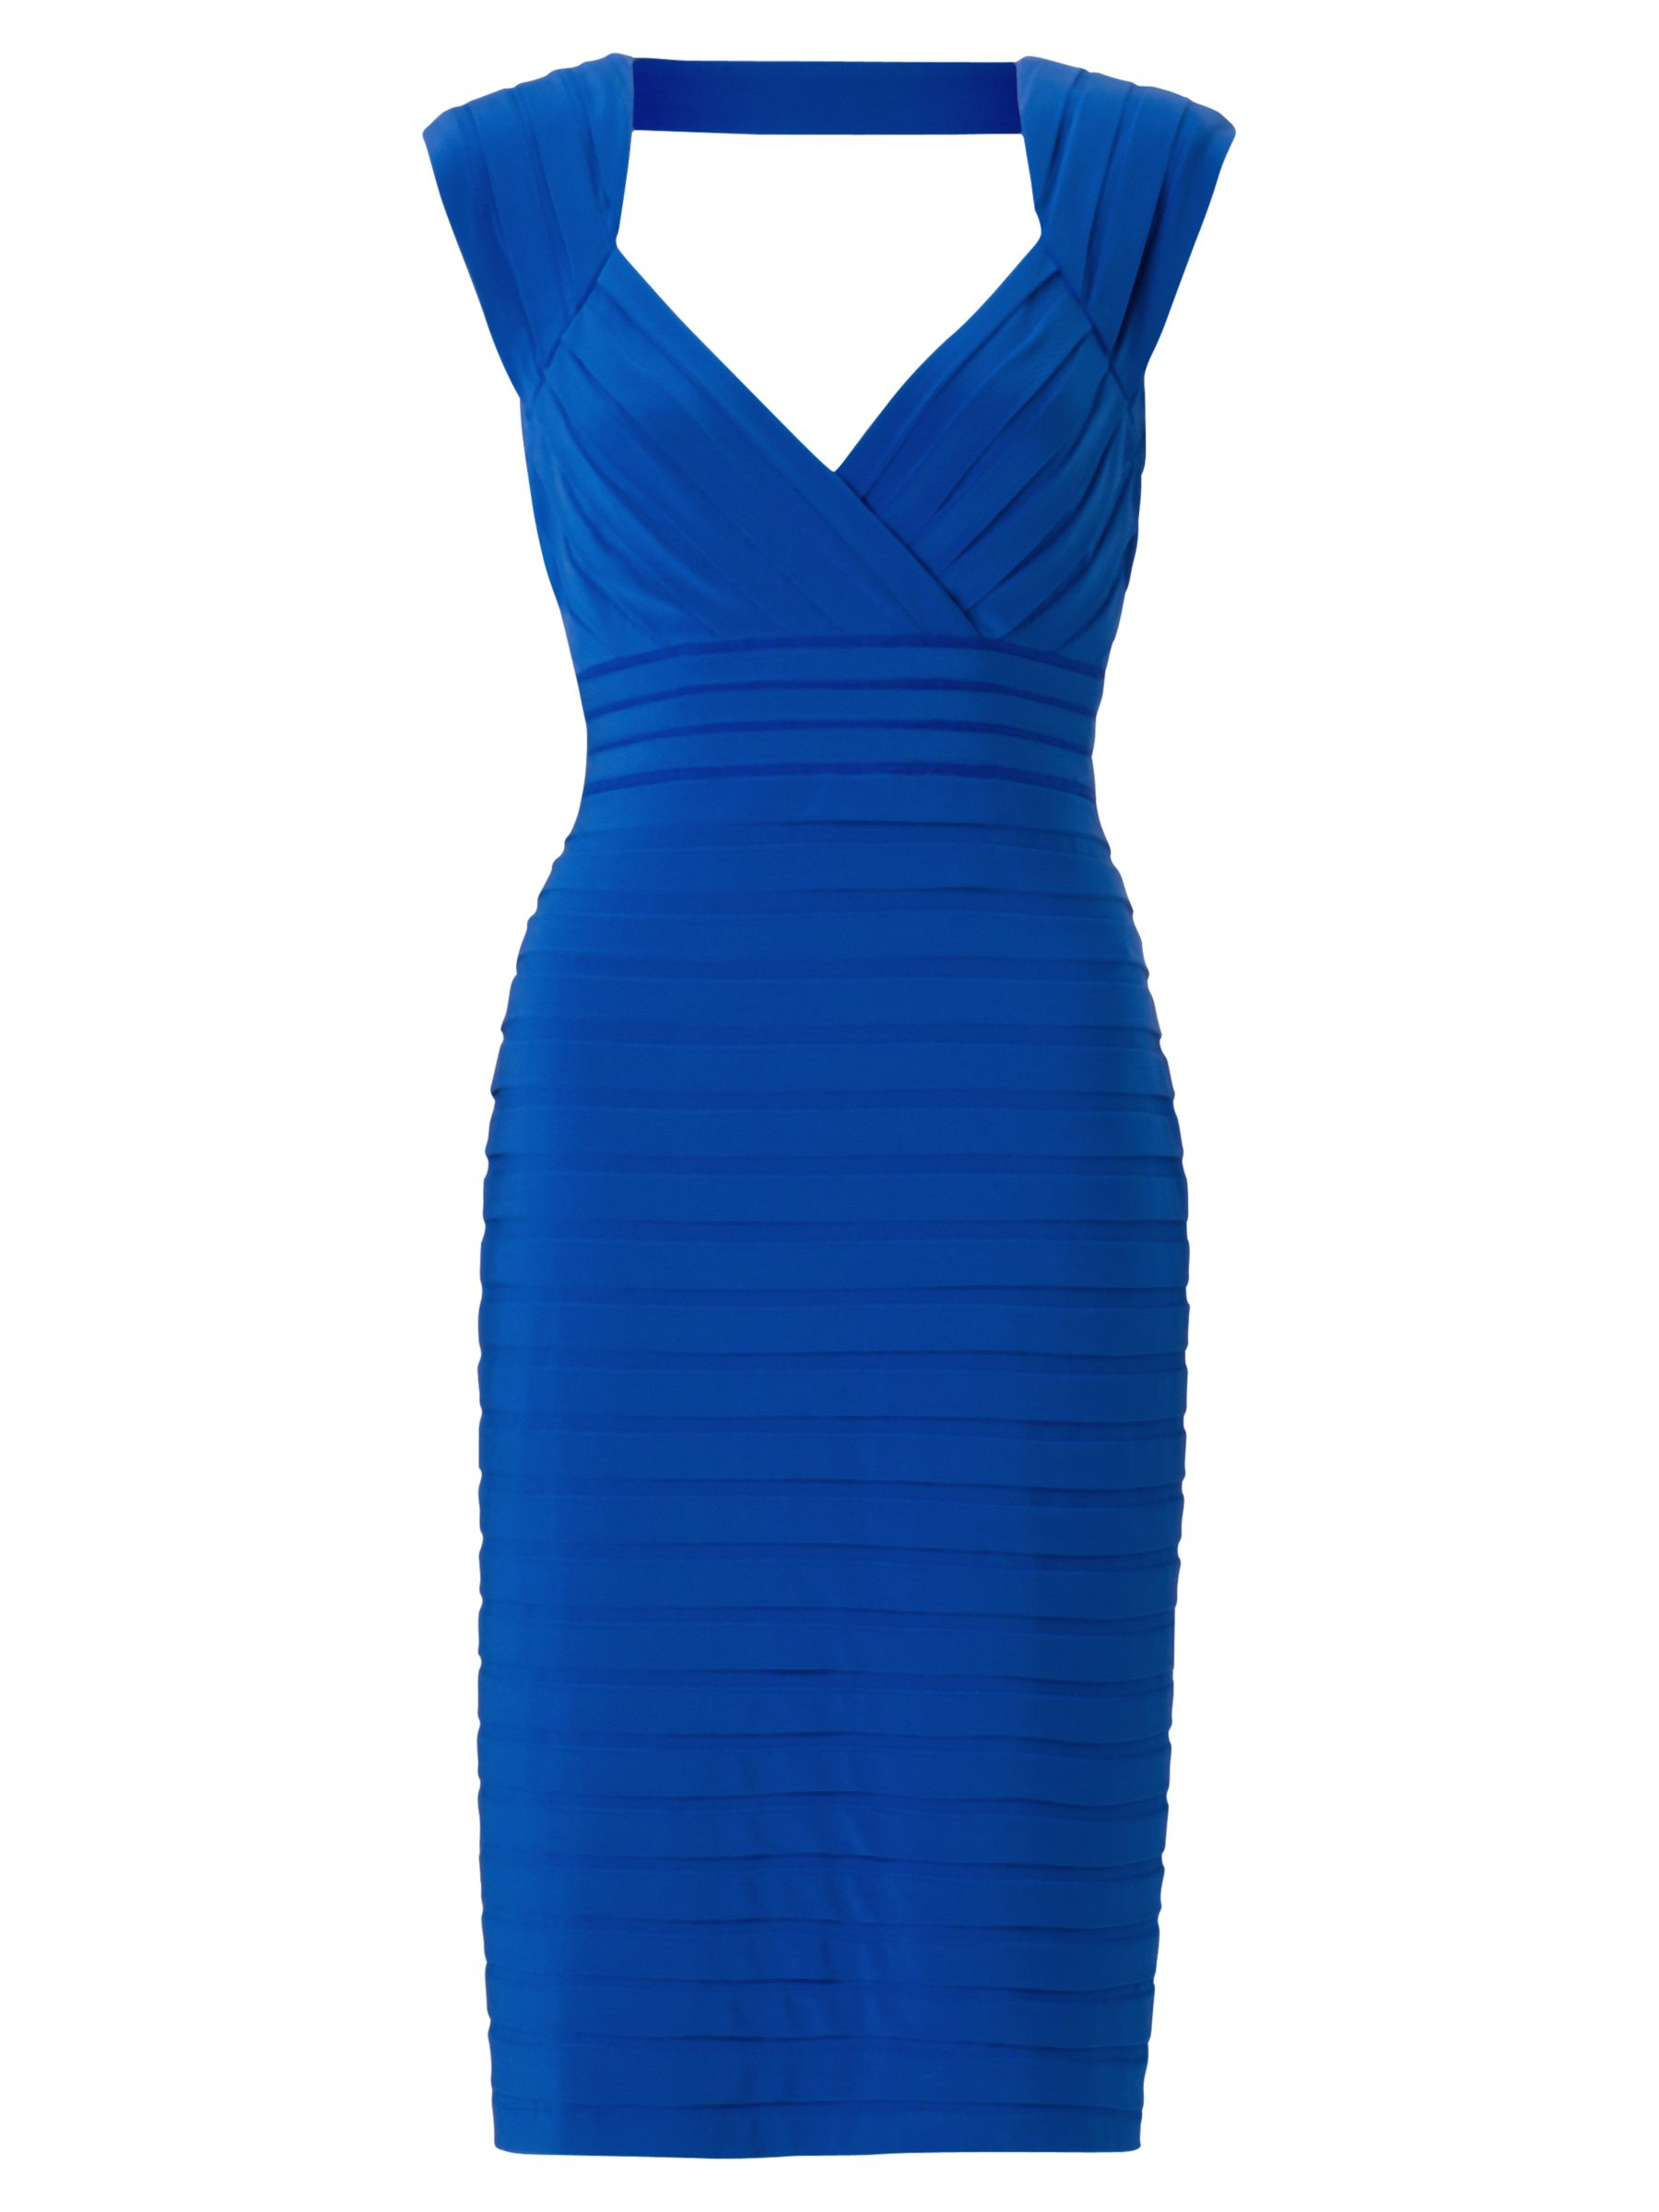 adrianna papell open back banded dress prussian, adrianna, papell, open, back, banded, dress, prussian, adrianna papell, 8|10|16|12|14|18, women, brands a-k, womens dresses, 1879469